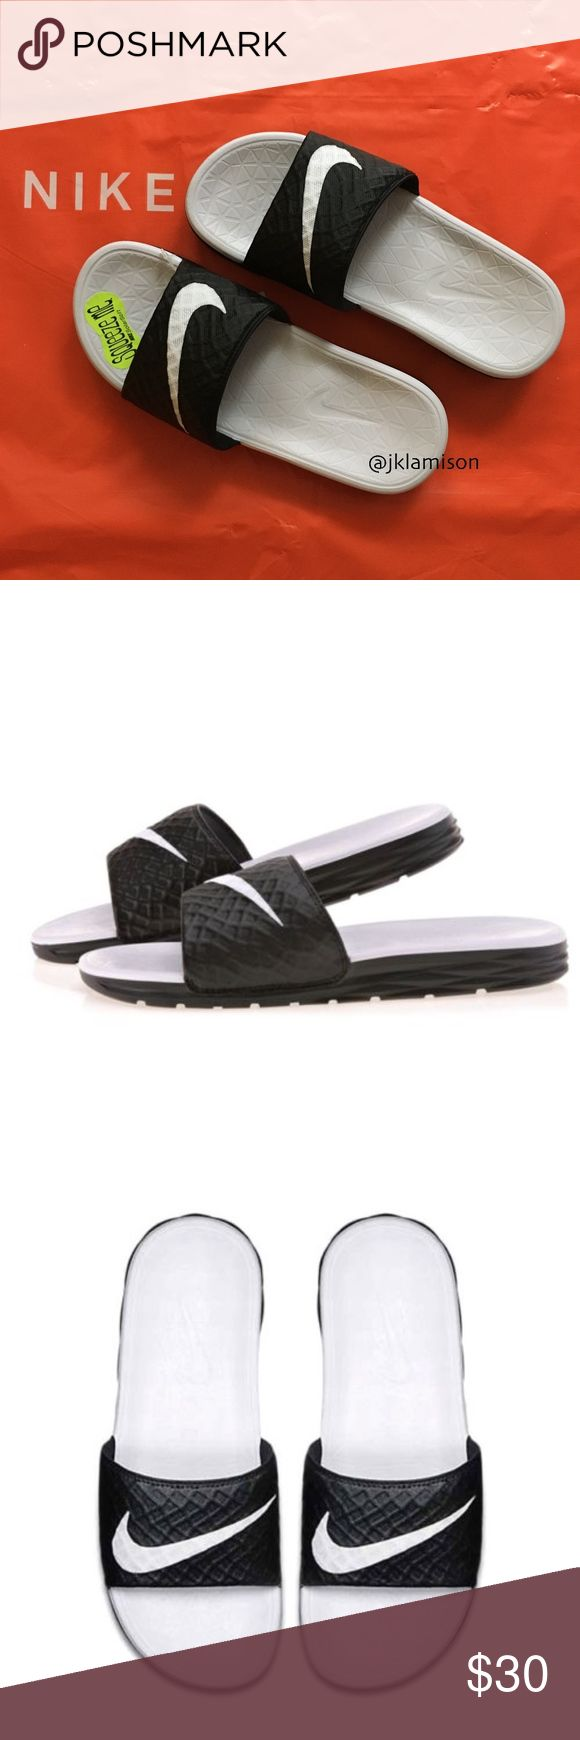 Nike BENASSI SOLARSOFT Women's Sport Slides Sandal The Nike Benassi Solarsoft Women's Slide is made with a soft, pliable foam midsole for plush cushioning and flex grooves that allow your foot to move more naturally.  One-piece synthetic leather strap for durability and comfort Dual-density foam midsole and textured footbed create soft cushioning and a massaging effect Solarsoft foam outsole for durability and traction Flex grooves provide natural range of motion  New with Tag Nike Shoes…